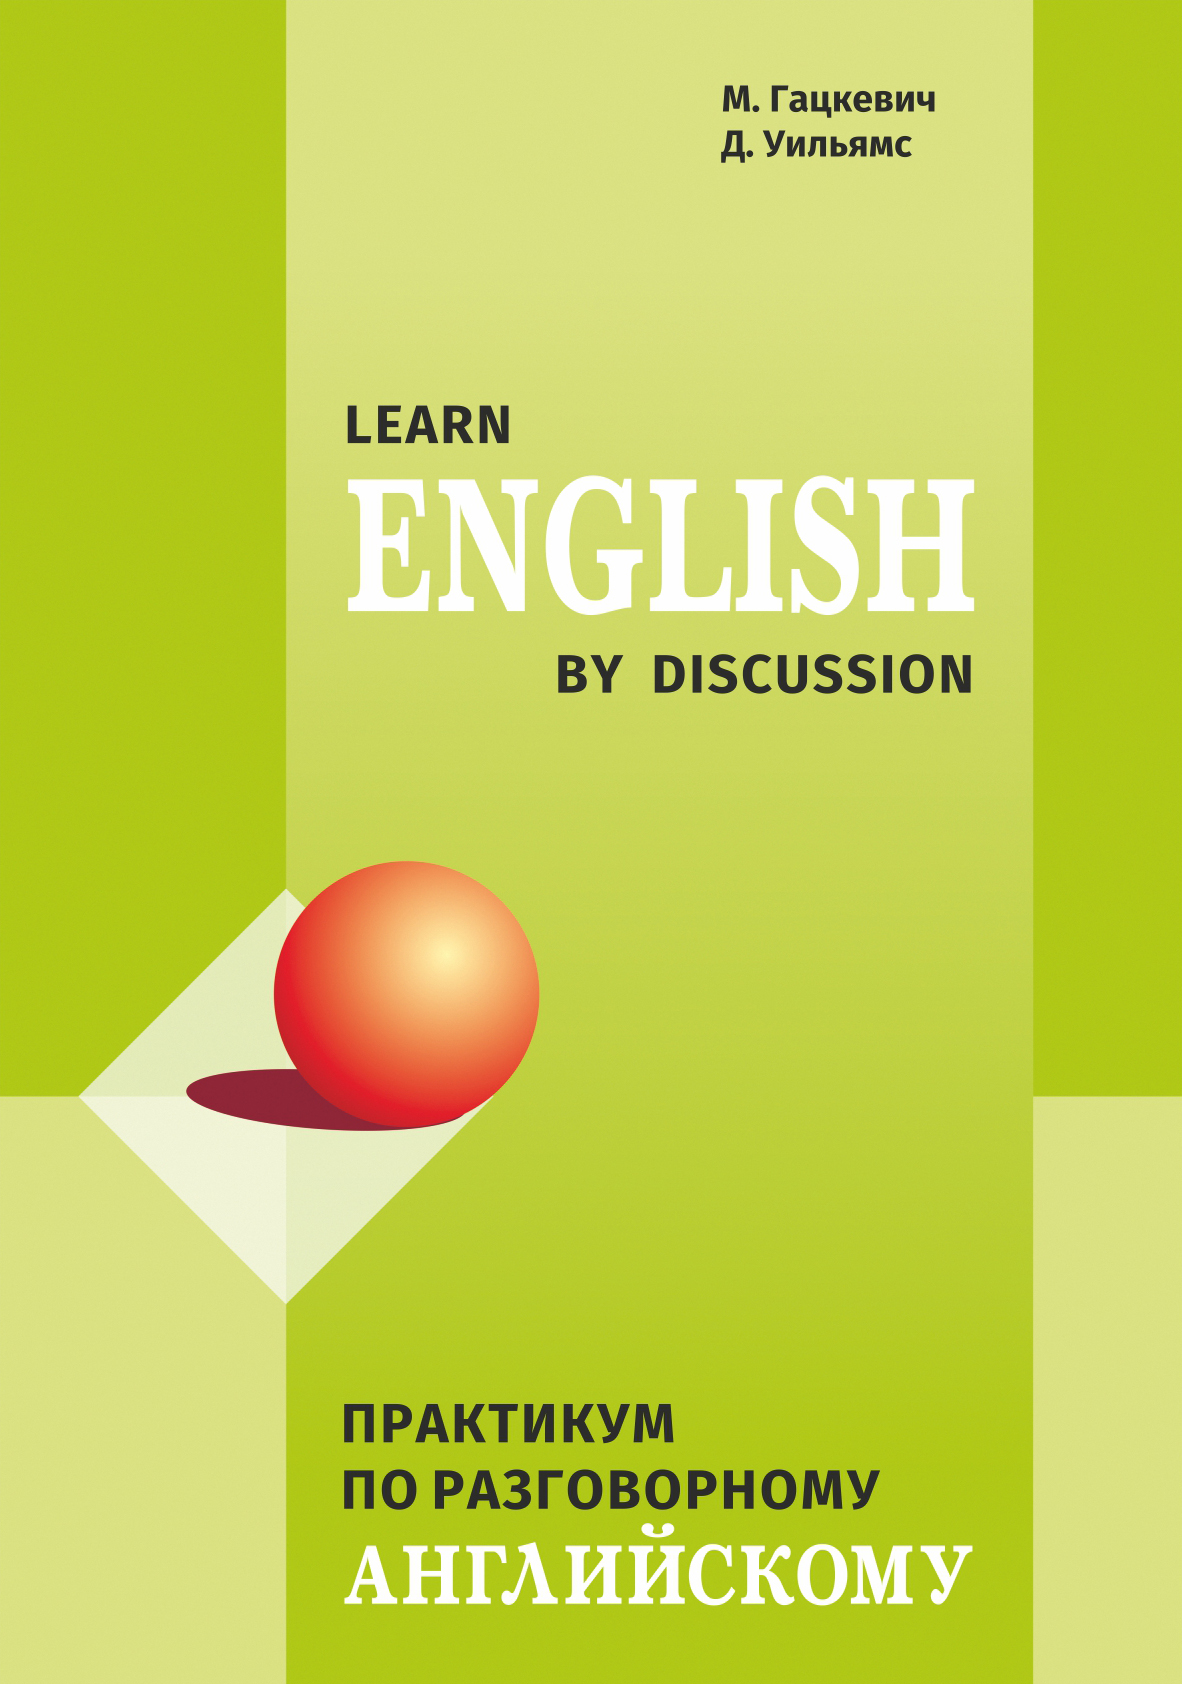 Марина Гацкевич Практикум по разговорному английскому / Learn English by Discussion